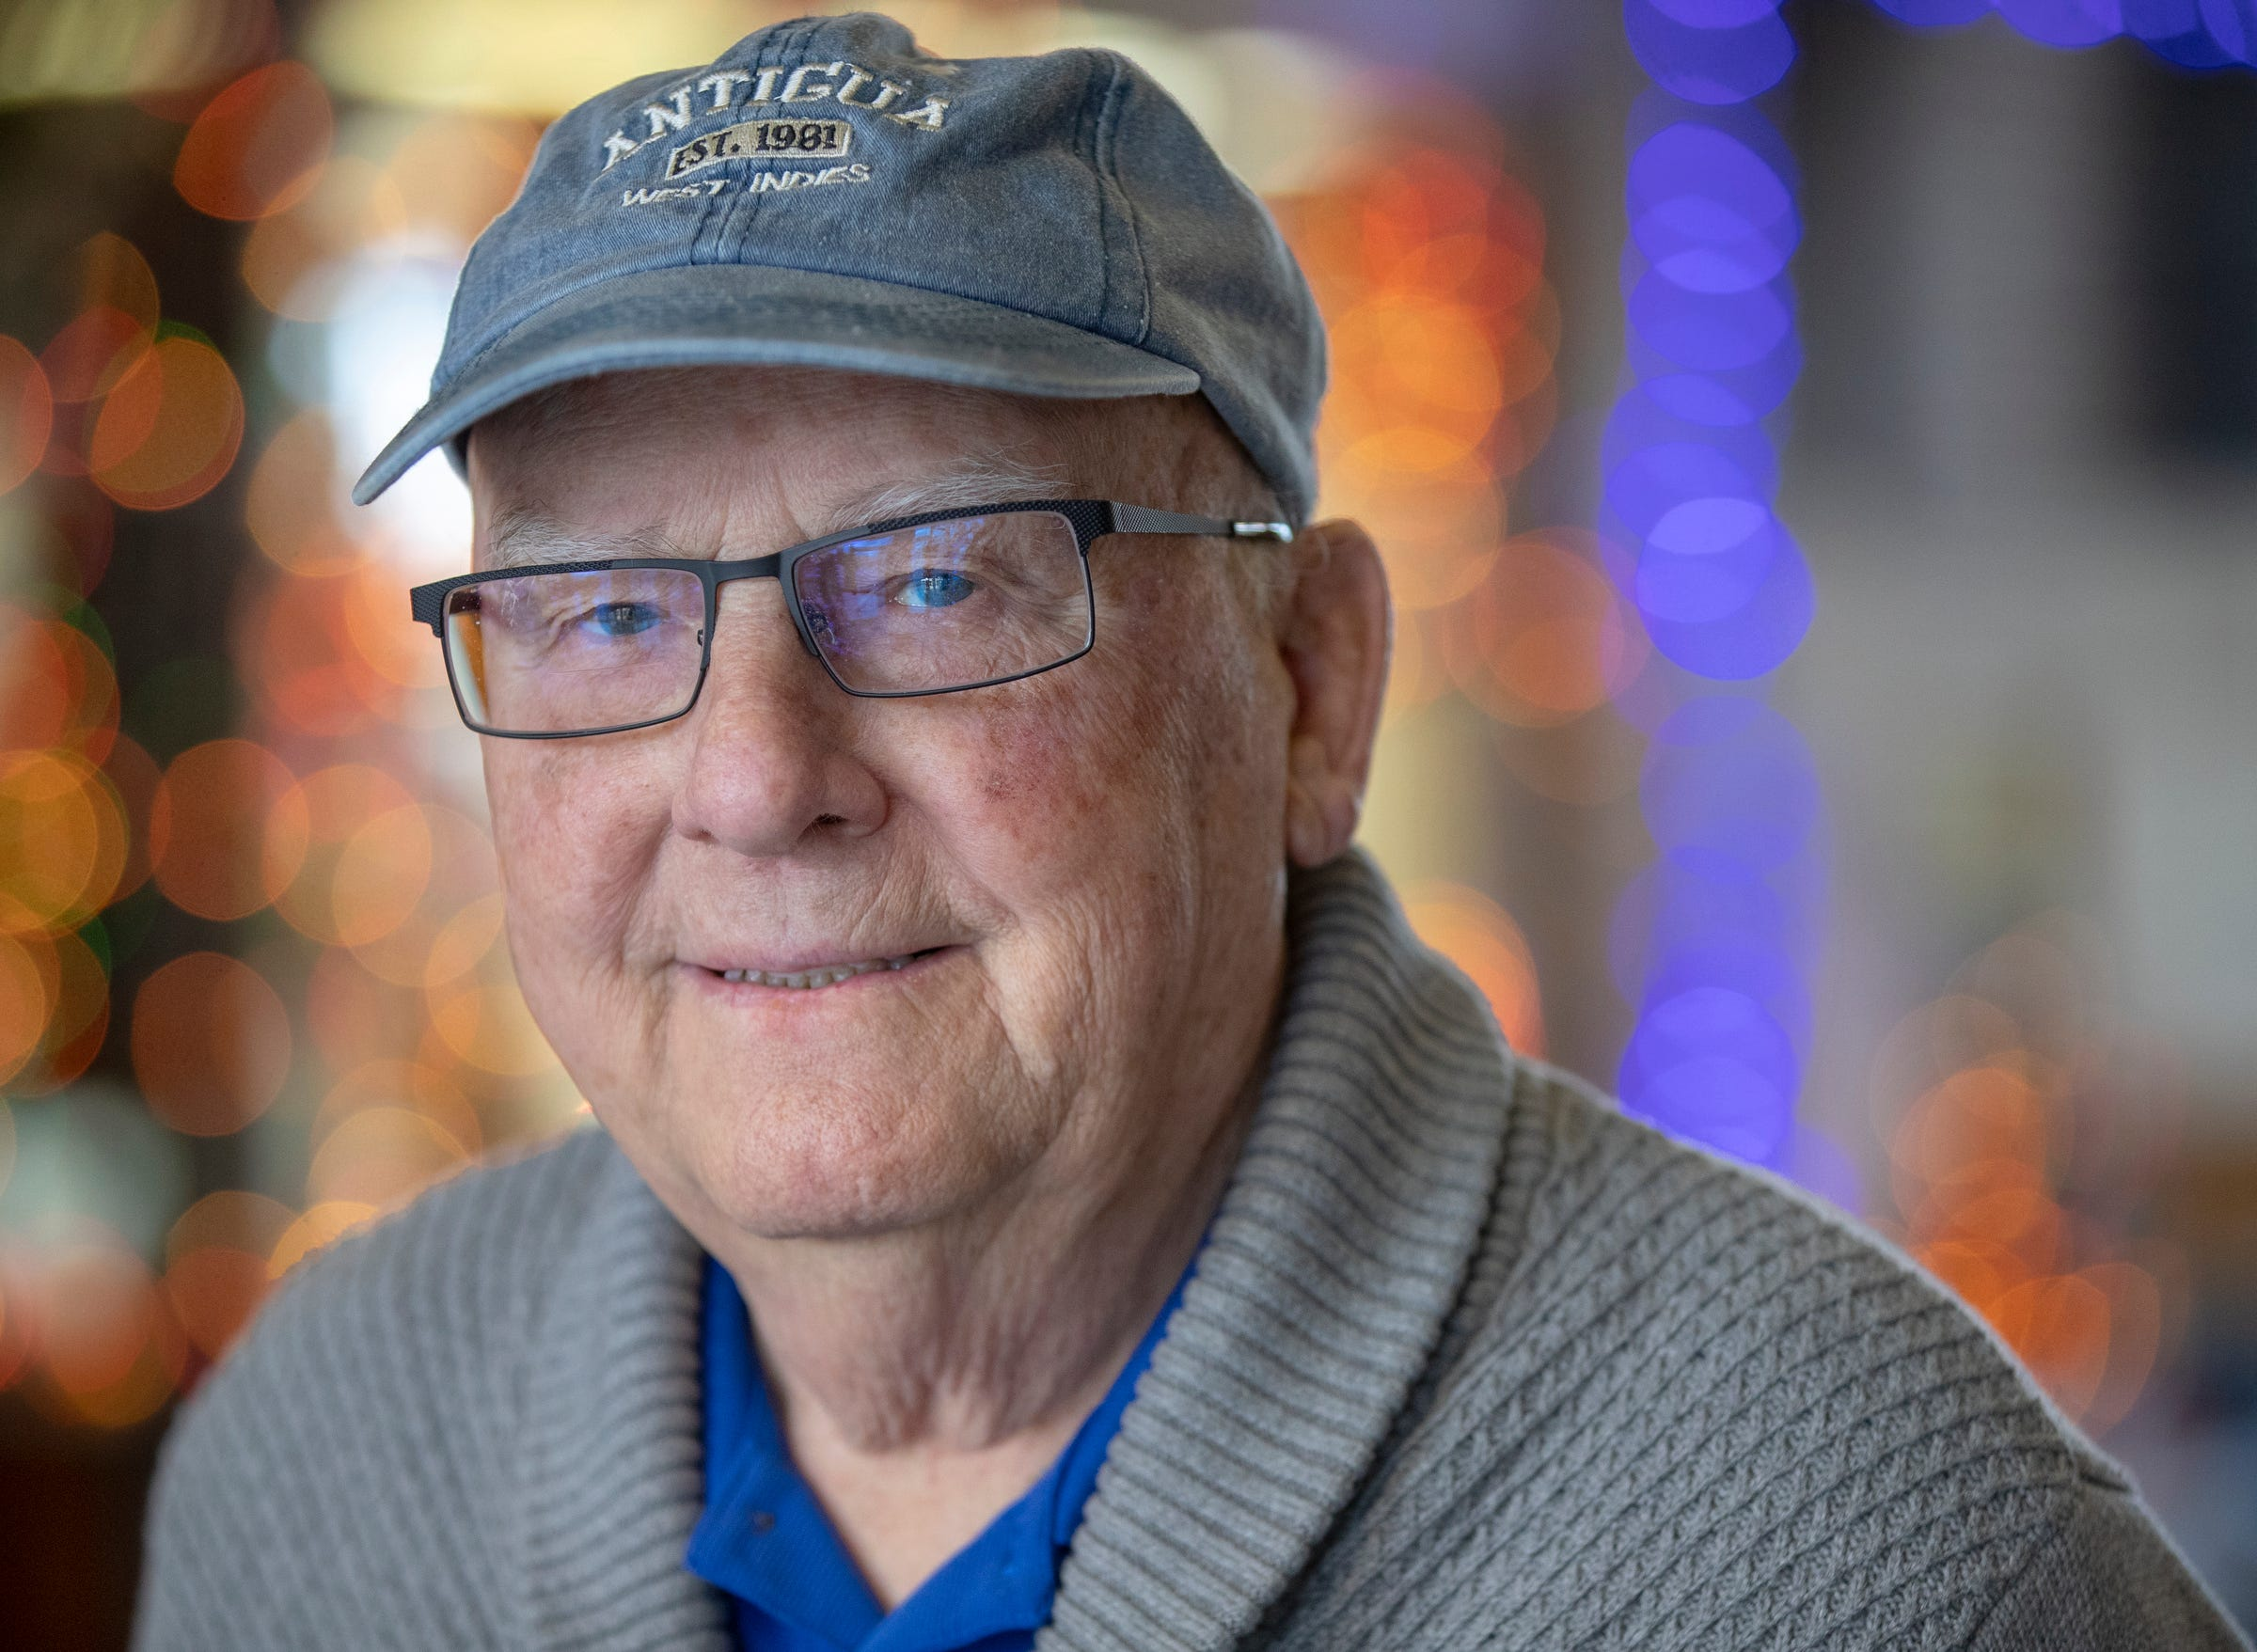 Jim Hensley oversees the UAW union hall, which services inactive unions Locals 662 and 663 and the active Local 1963 in Anderson, Friday, Dec. 13, 2019. The 83-year-old retired employee of Guide Corporation was working when a toxic discharge of chemicals originating at Guide polluted 50 miles of the White River in 1999.